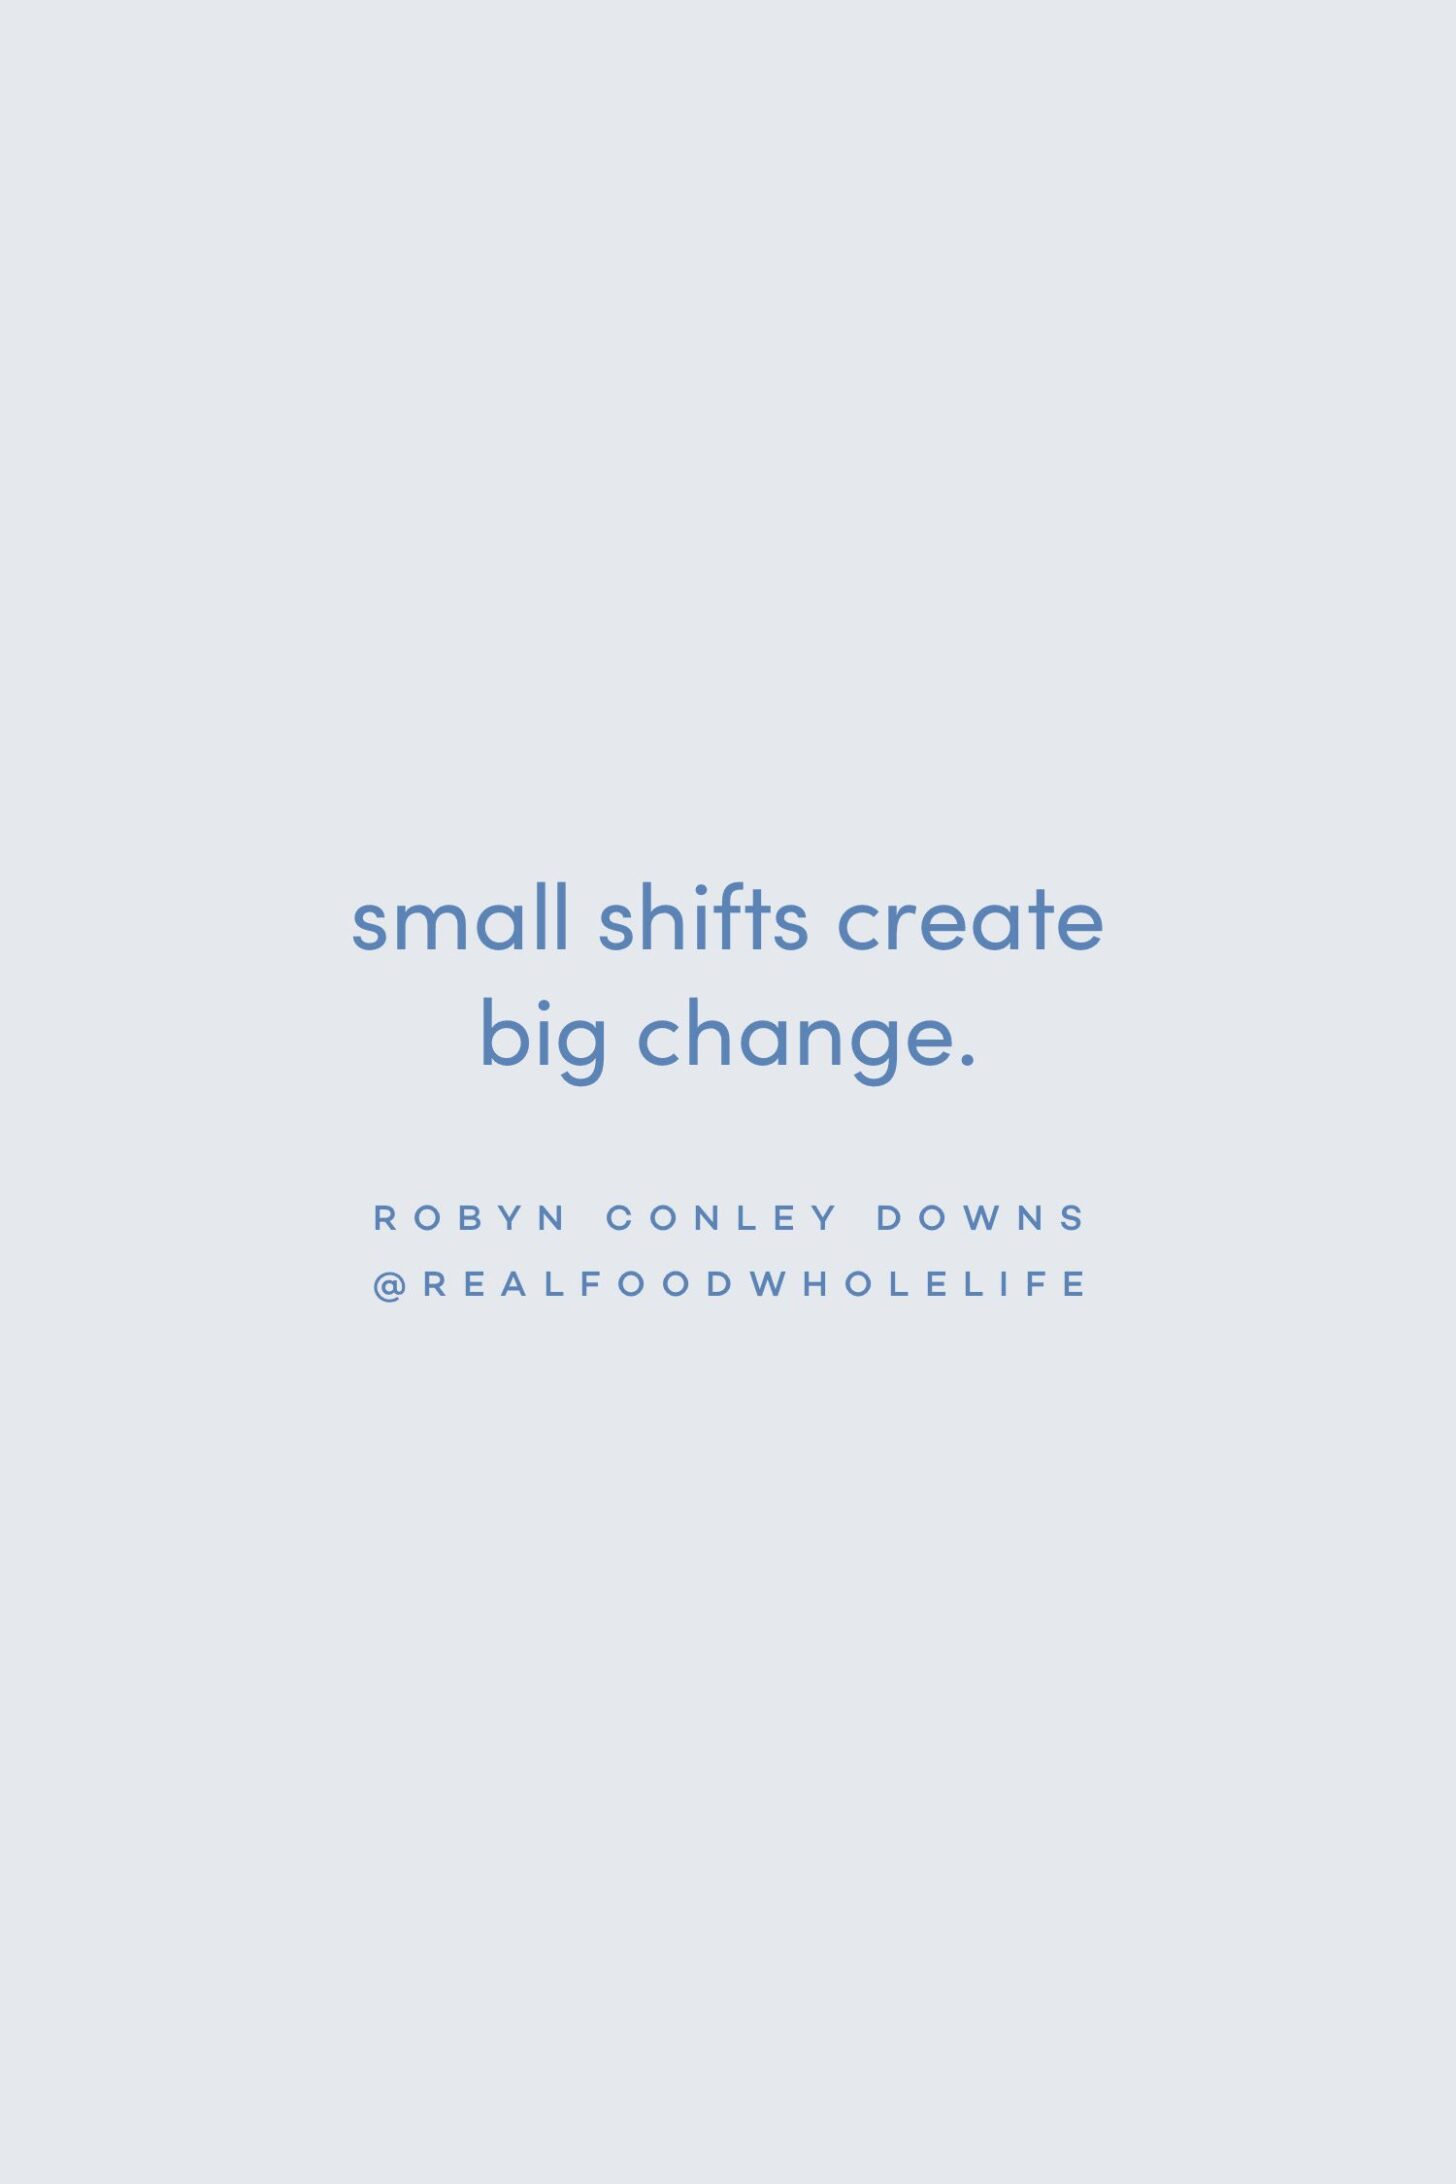 Quote on small shifts for big change by Robyn Conley Downs on the Feel Good Effect Podcast #realfoodwholelife #feelgoodeffectpodcast #motivationalquote #positivityquote #inspirationalquote #wellnessquote #perfectionismquote #healthquote #growthquote